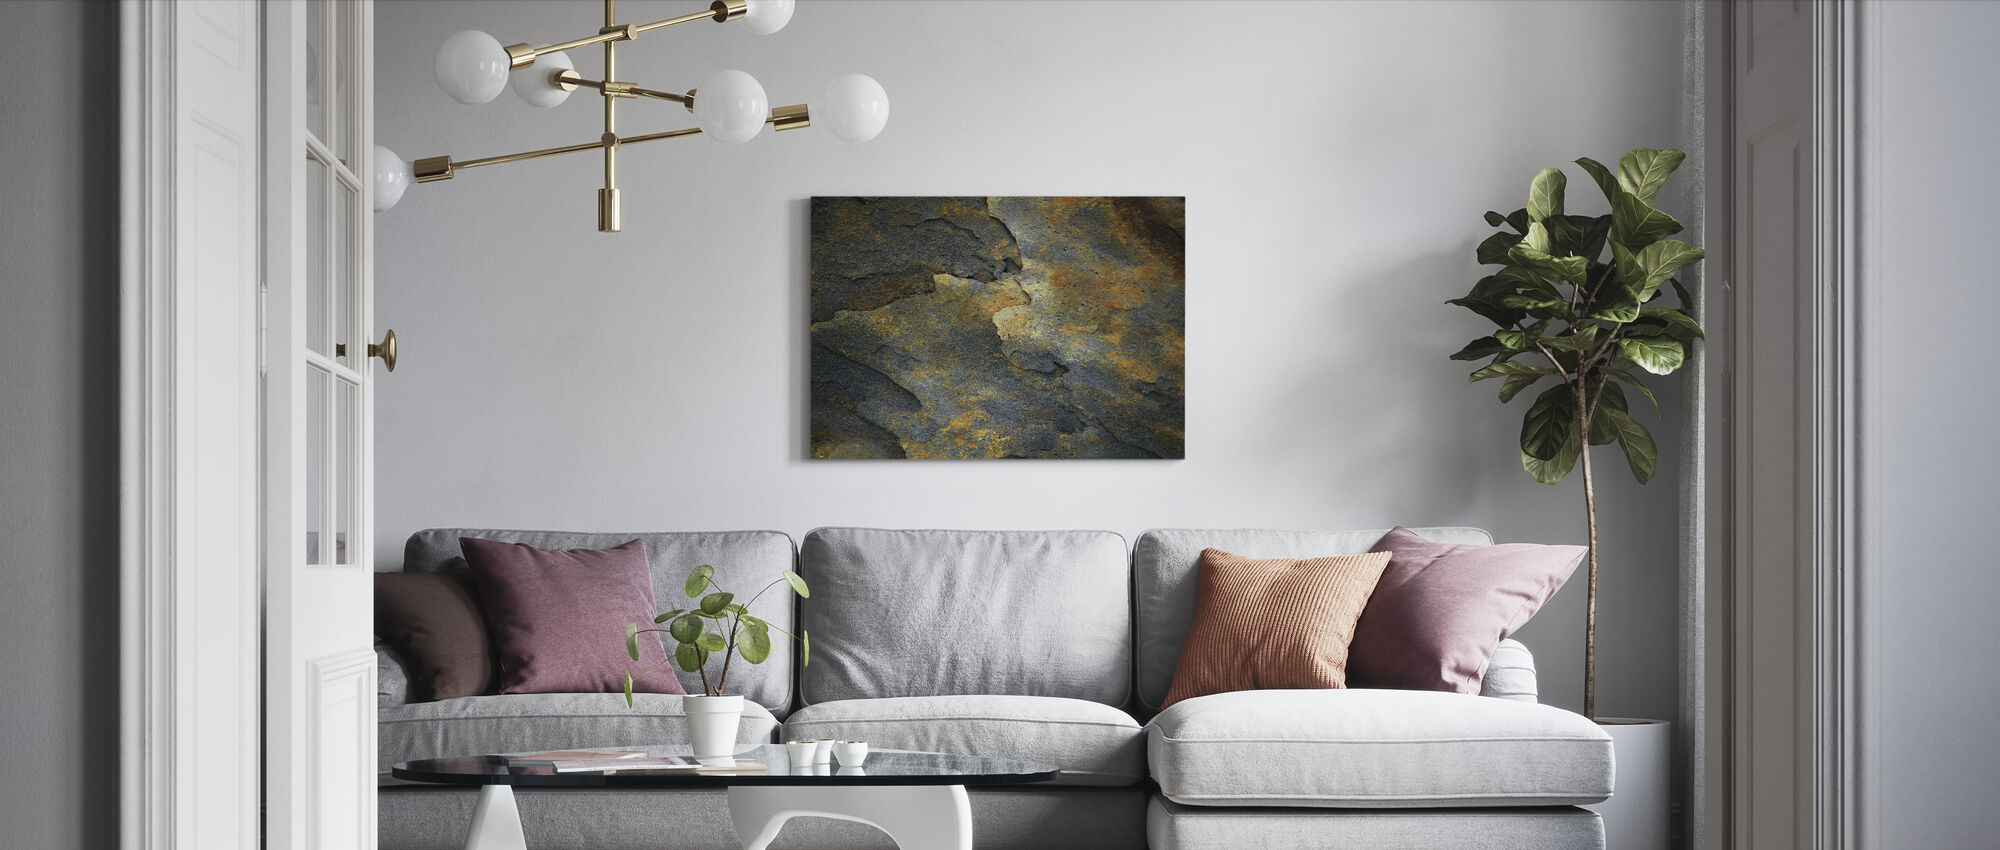 Minerale Rots - Canvas print - Woonkamer